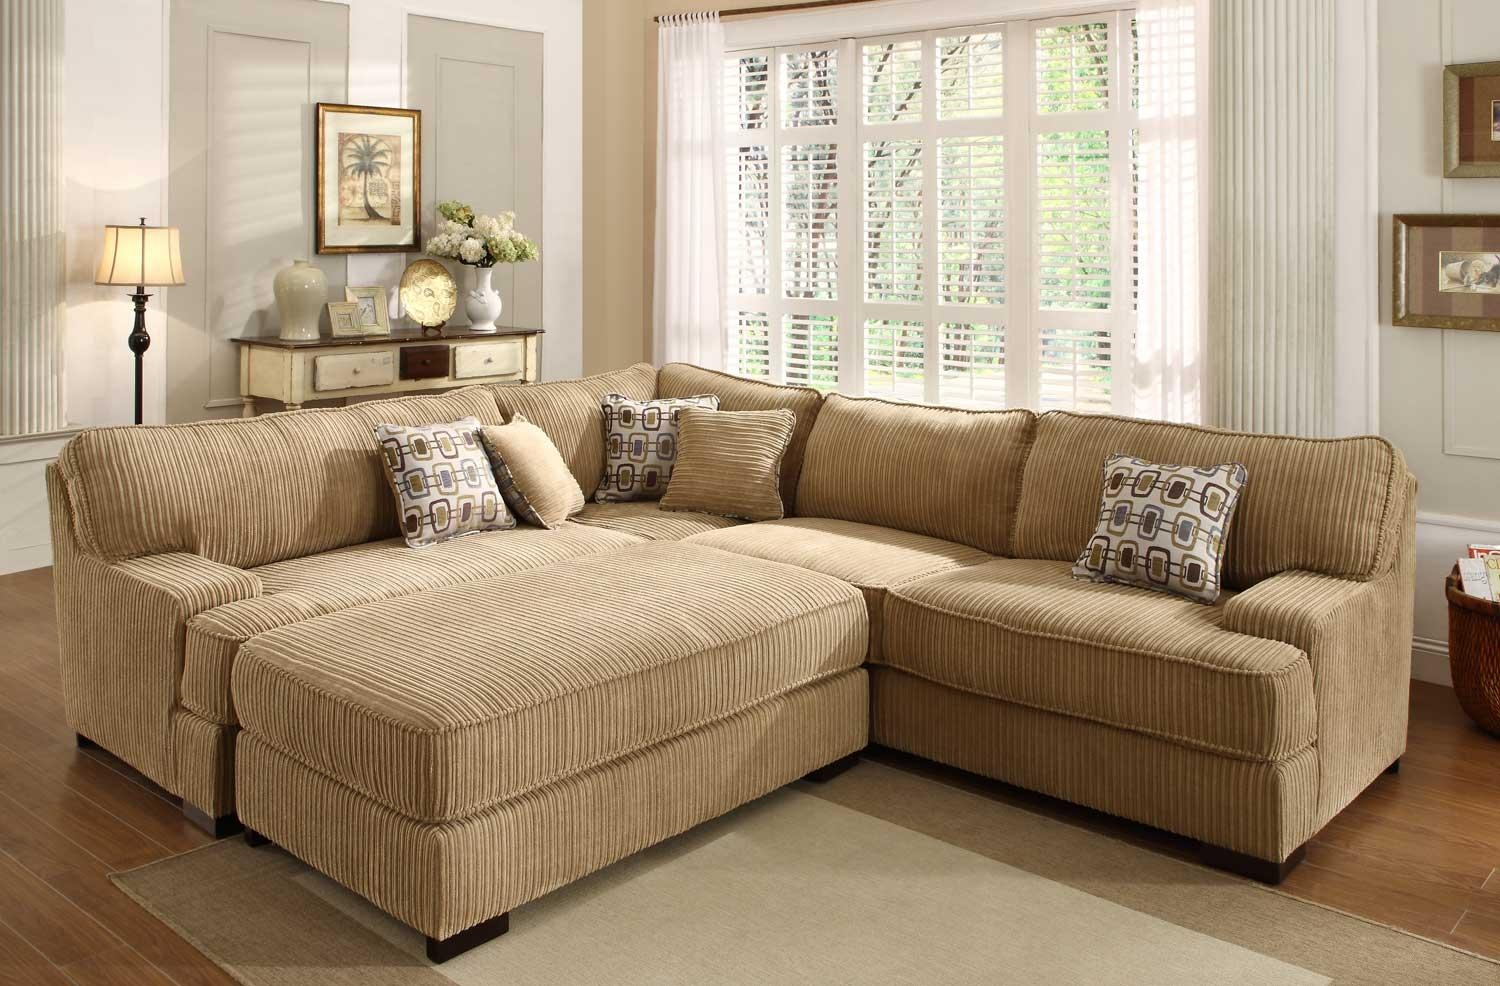 Sofas Center : Oversized Sectionals Sectional Sofas For Sale Inside Sectional Sofa With Large Ottoman (View 2 of 20)